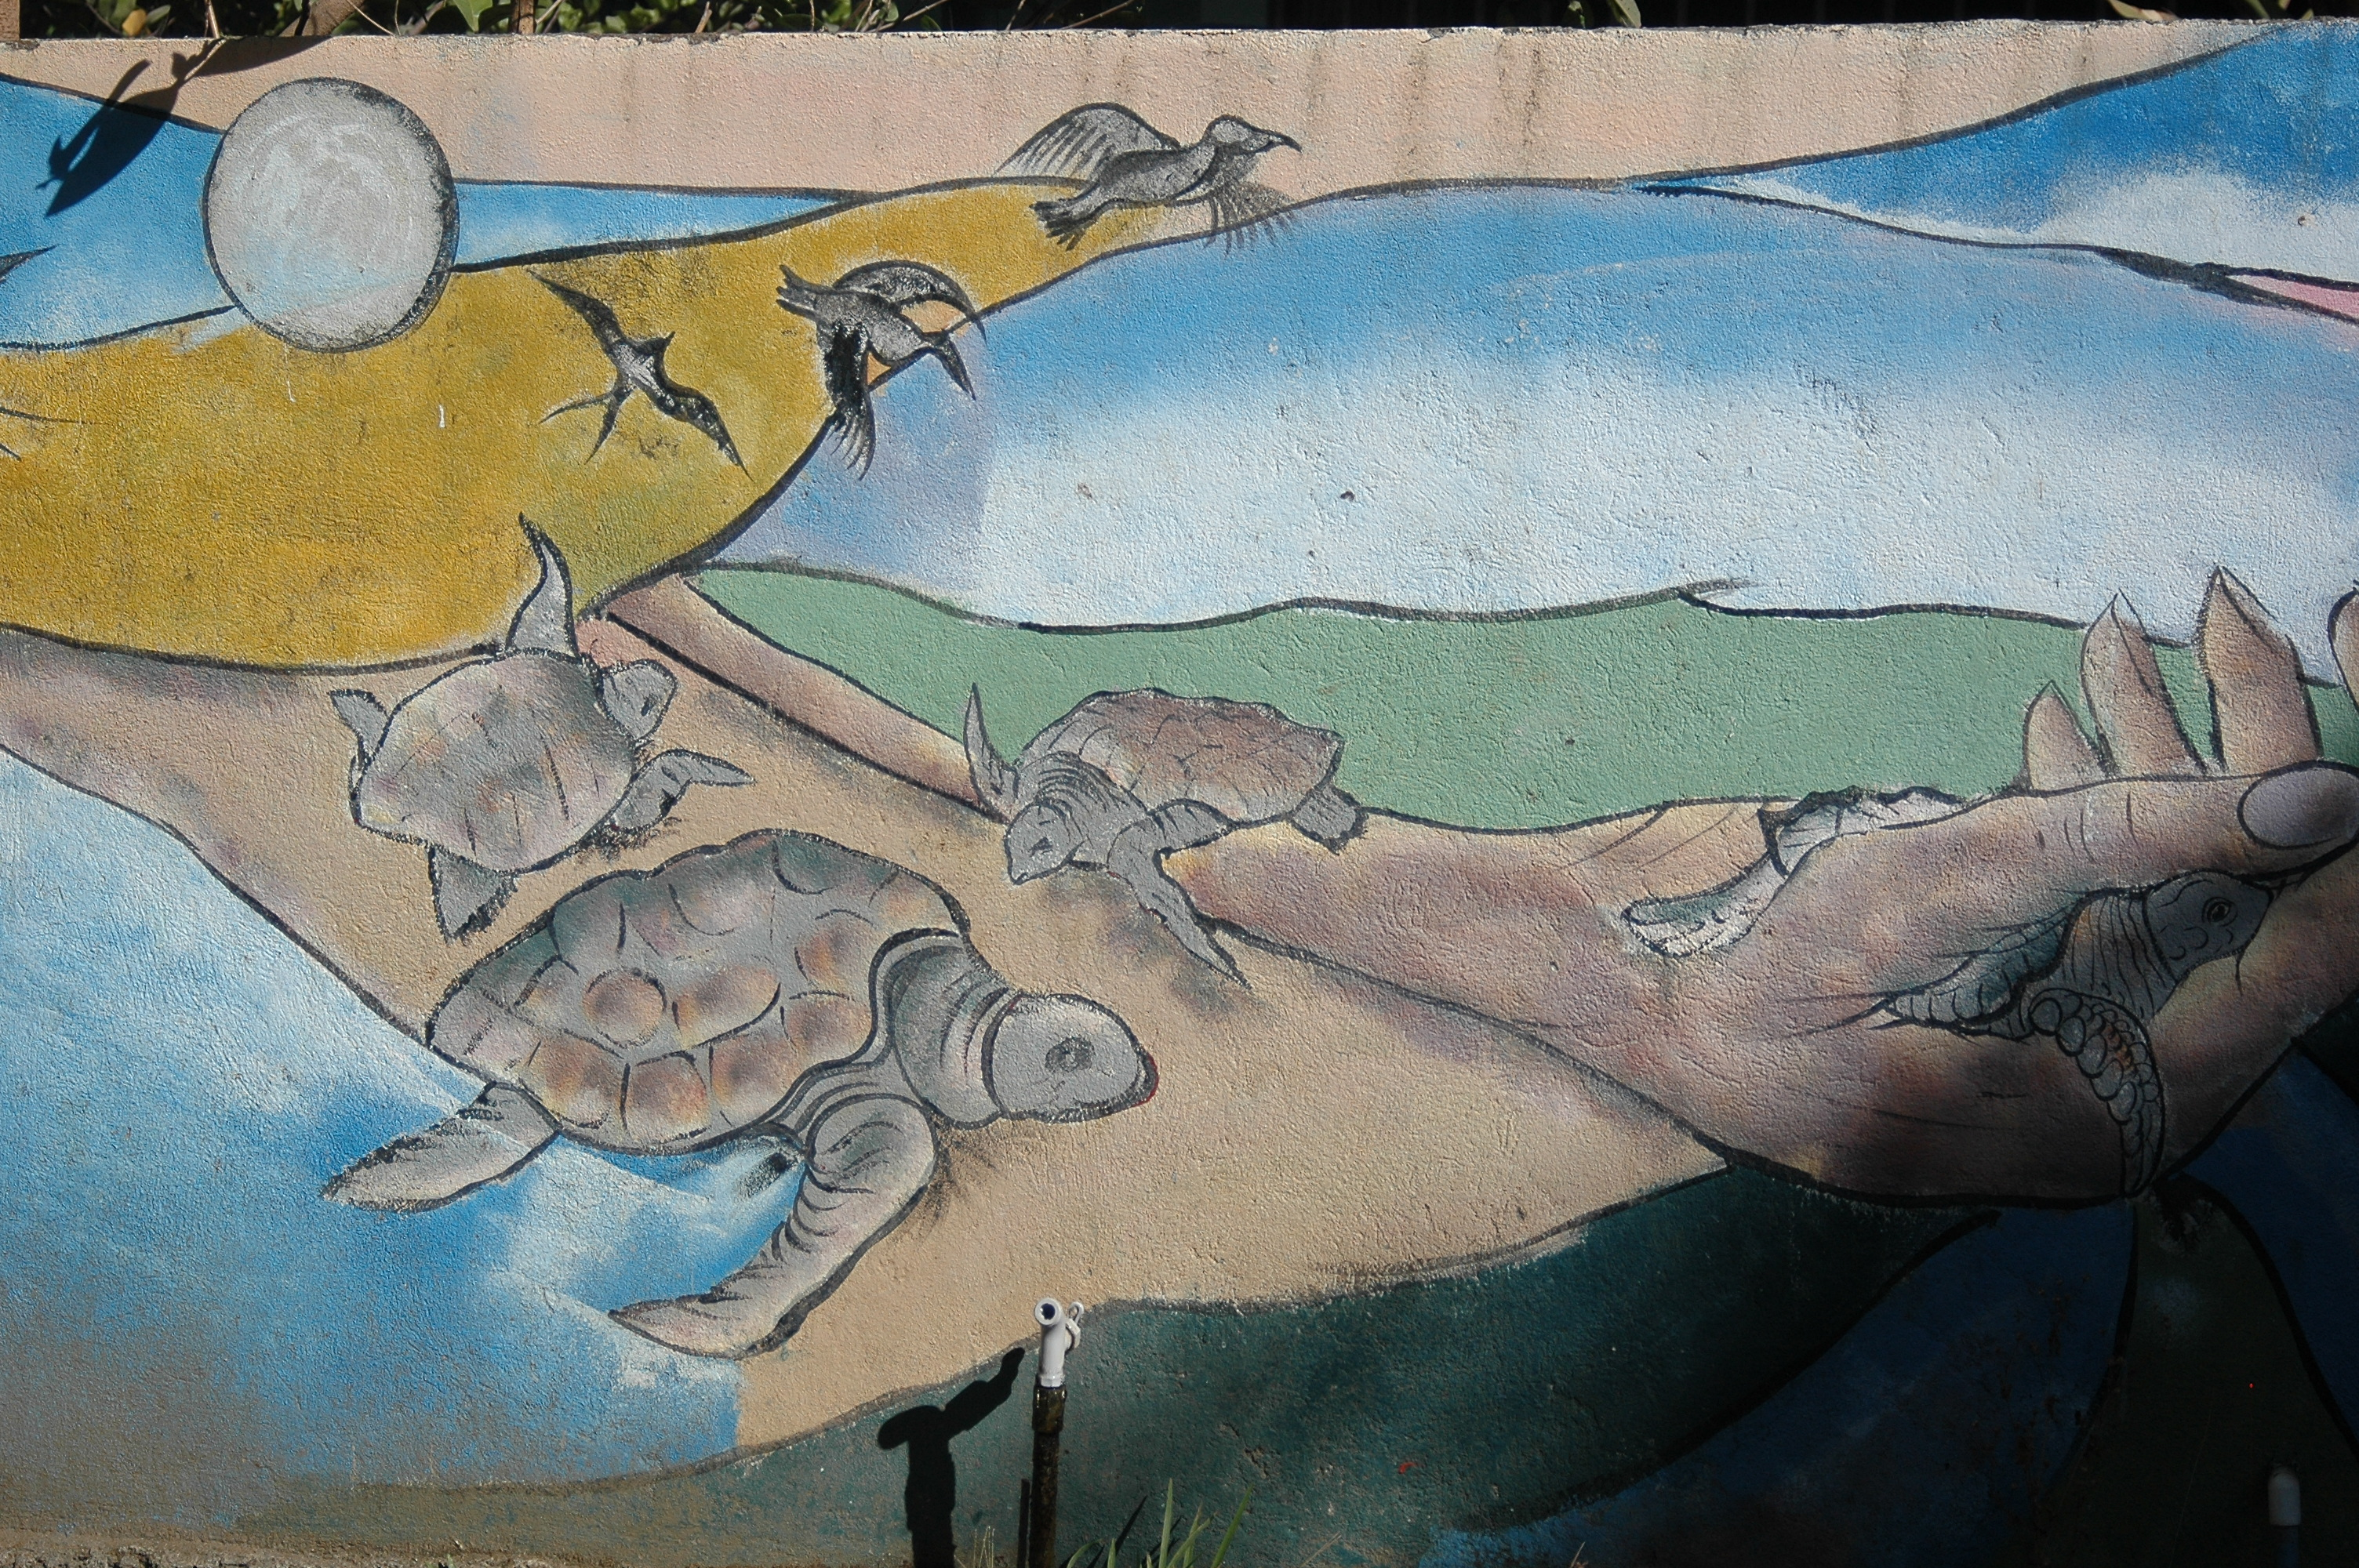 Murial at the Turtle Conservation Beach